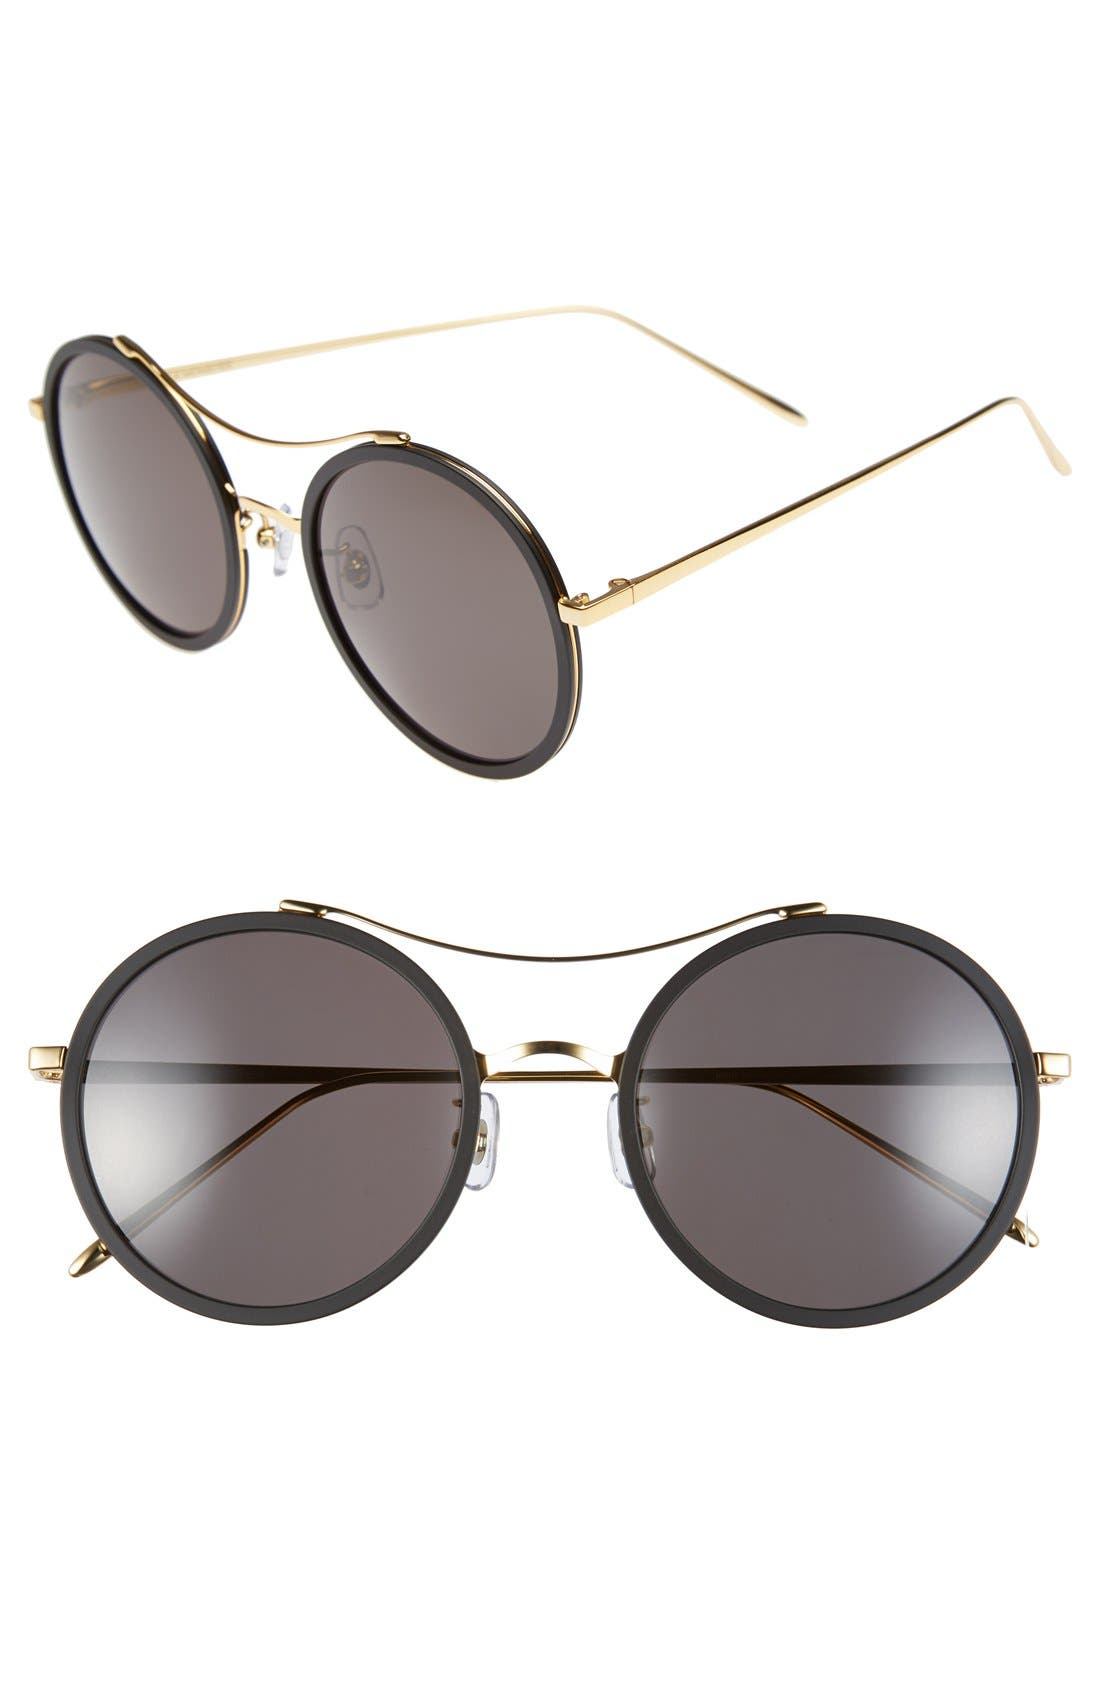 GENTLE MONSTER 52mm Round Sunglasses, Main, color, 001